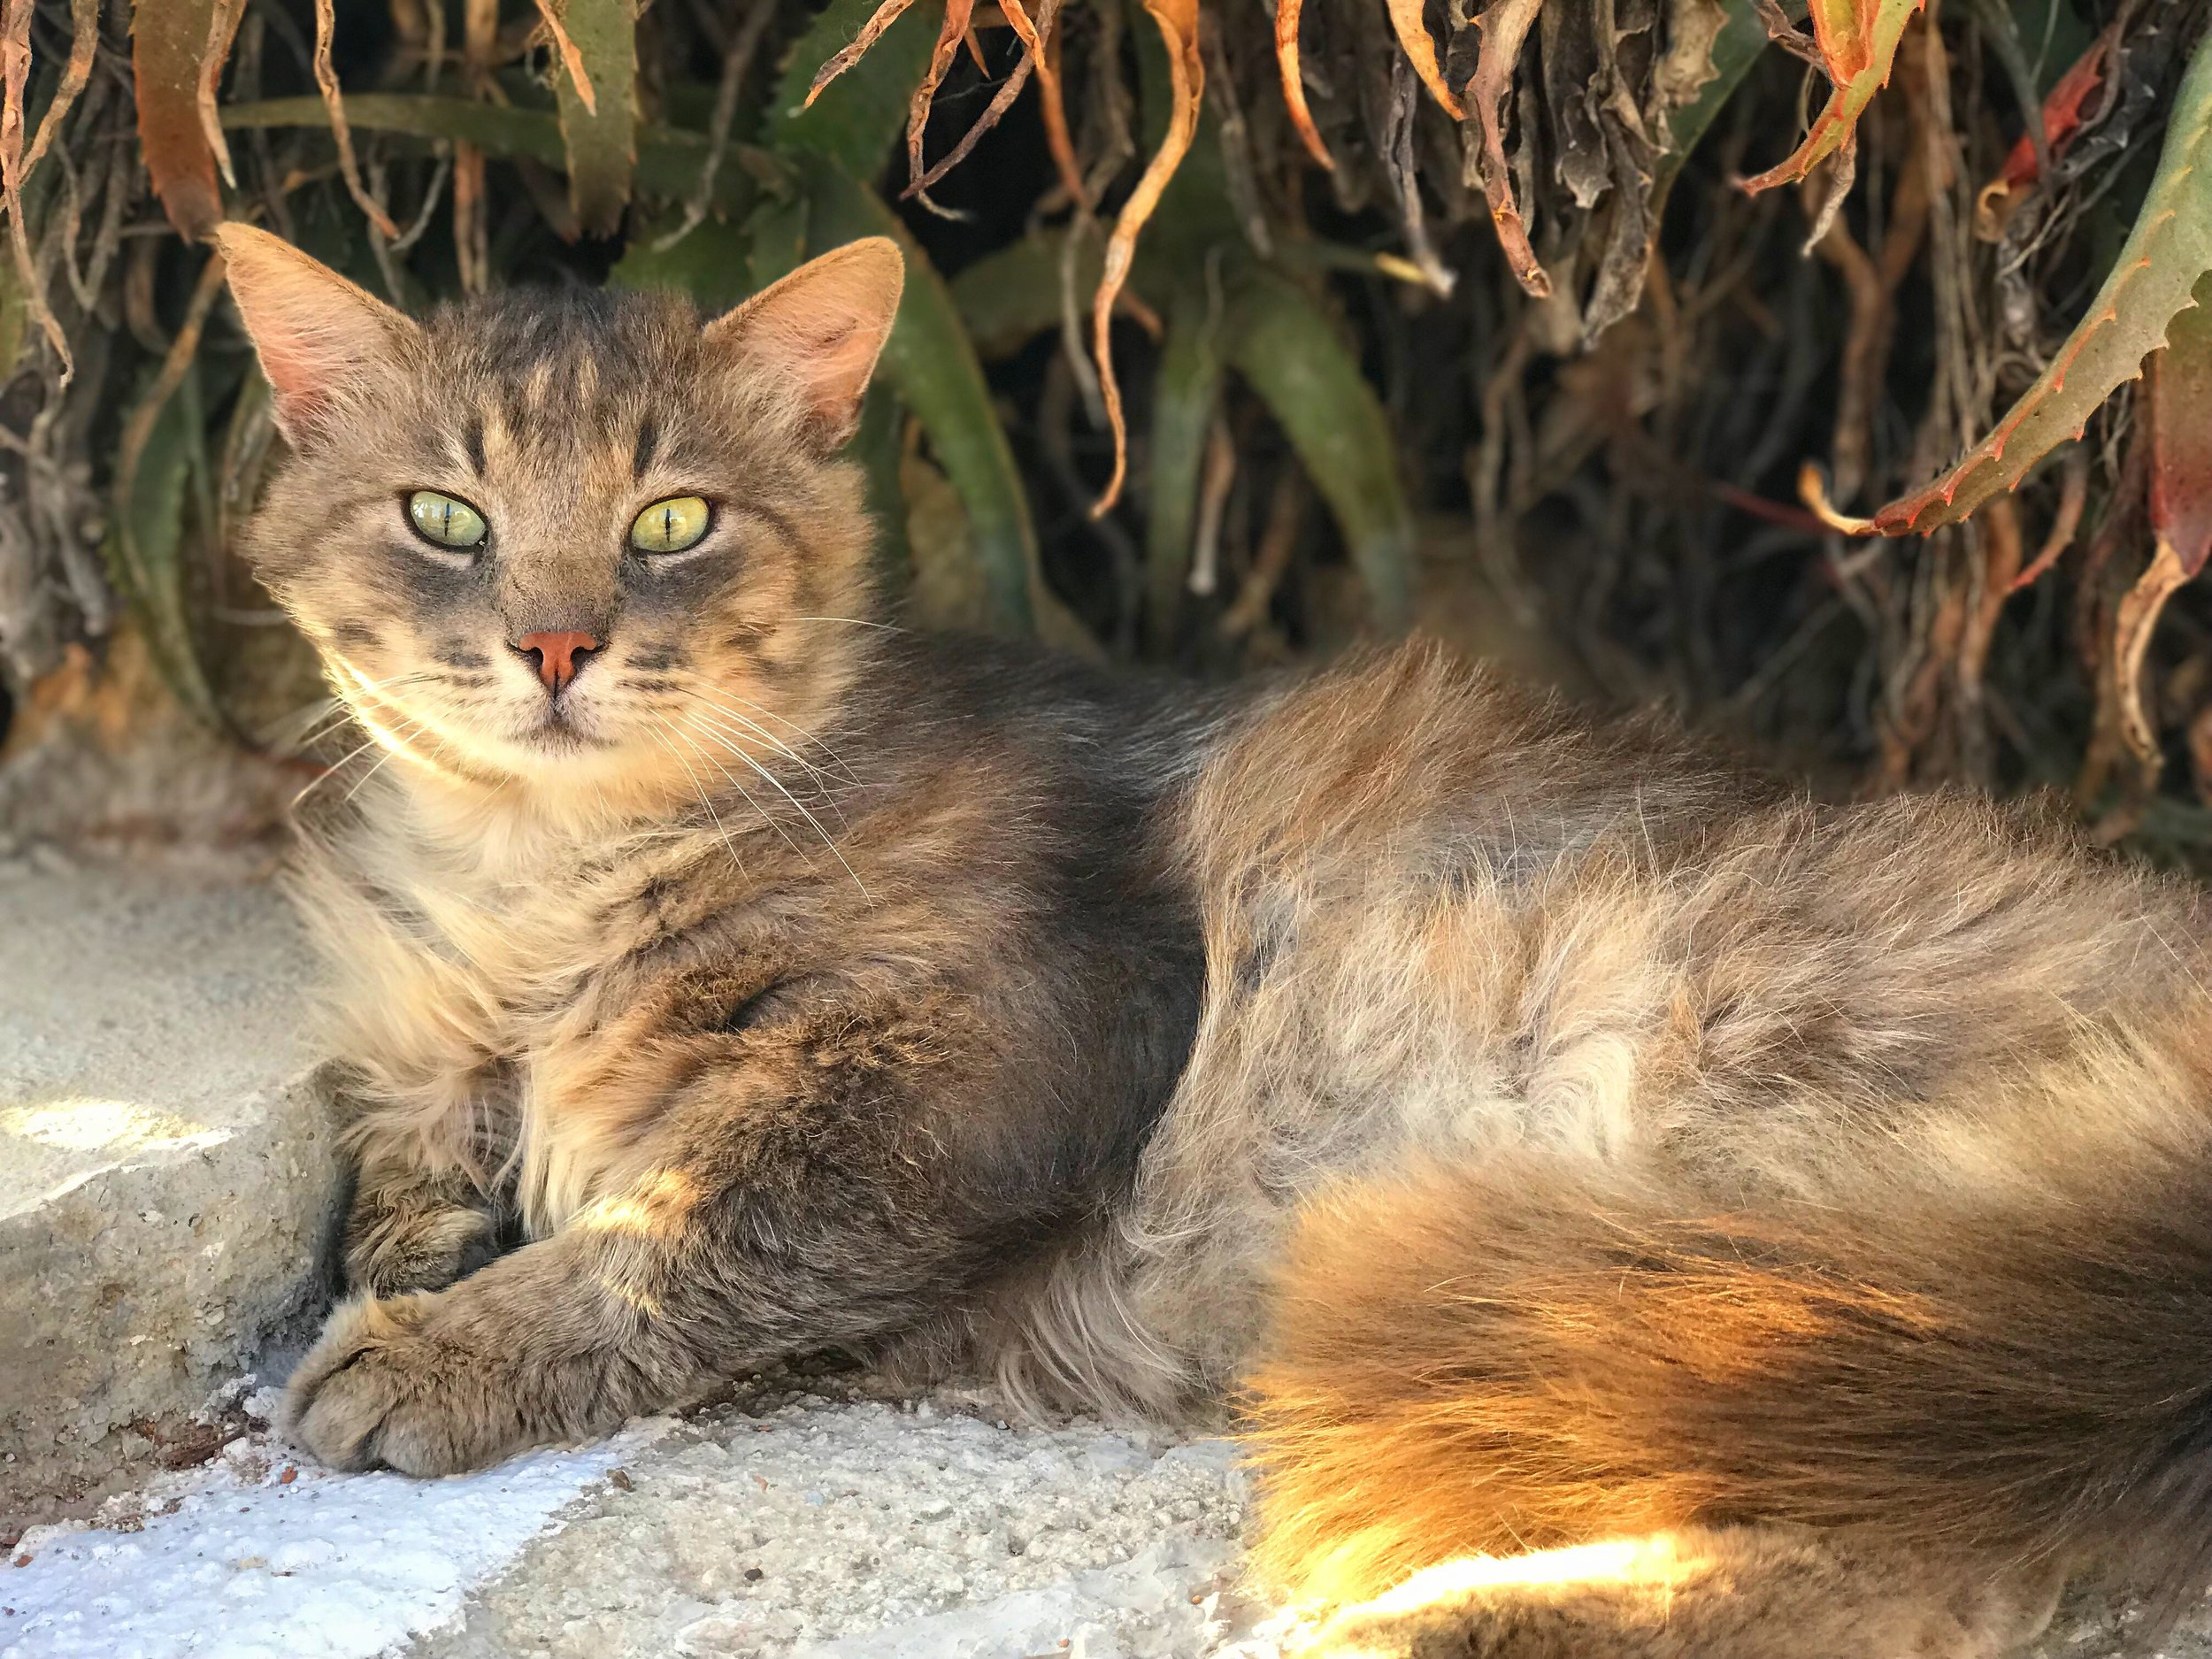 A beautiful stray cat who I found taking shade under an aloe vera plant at the retreat. I was captivated by those beautiful, green eyes.